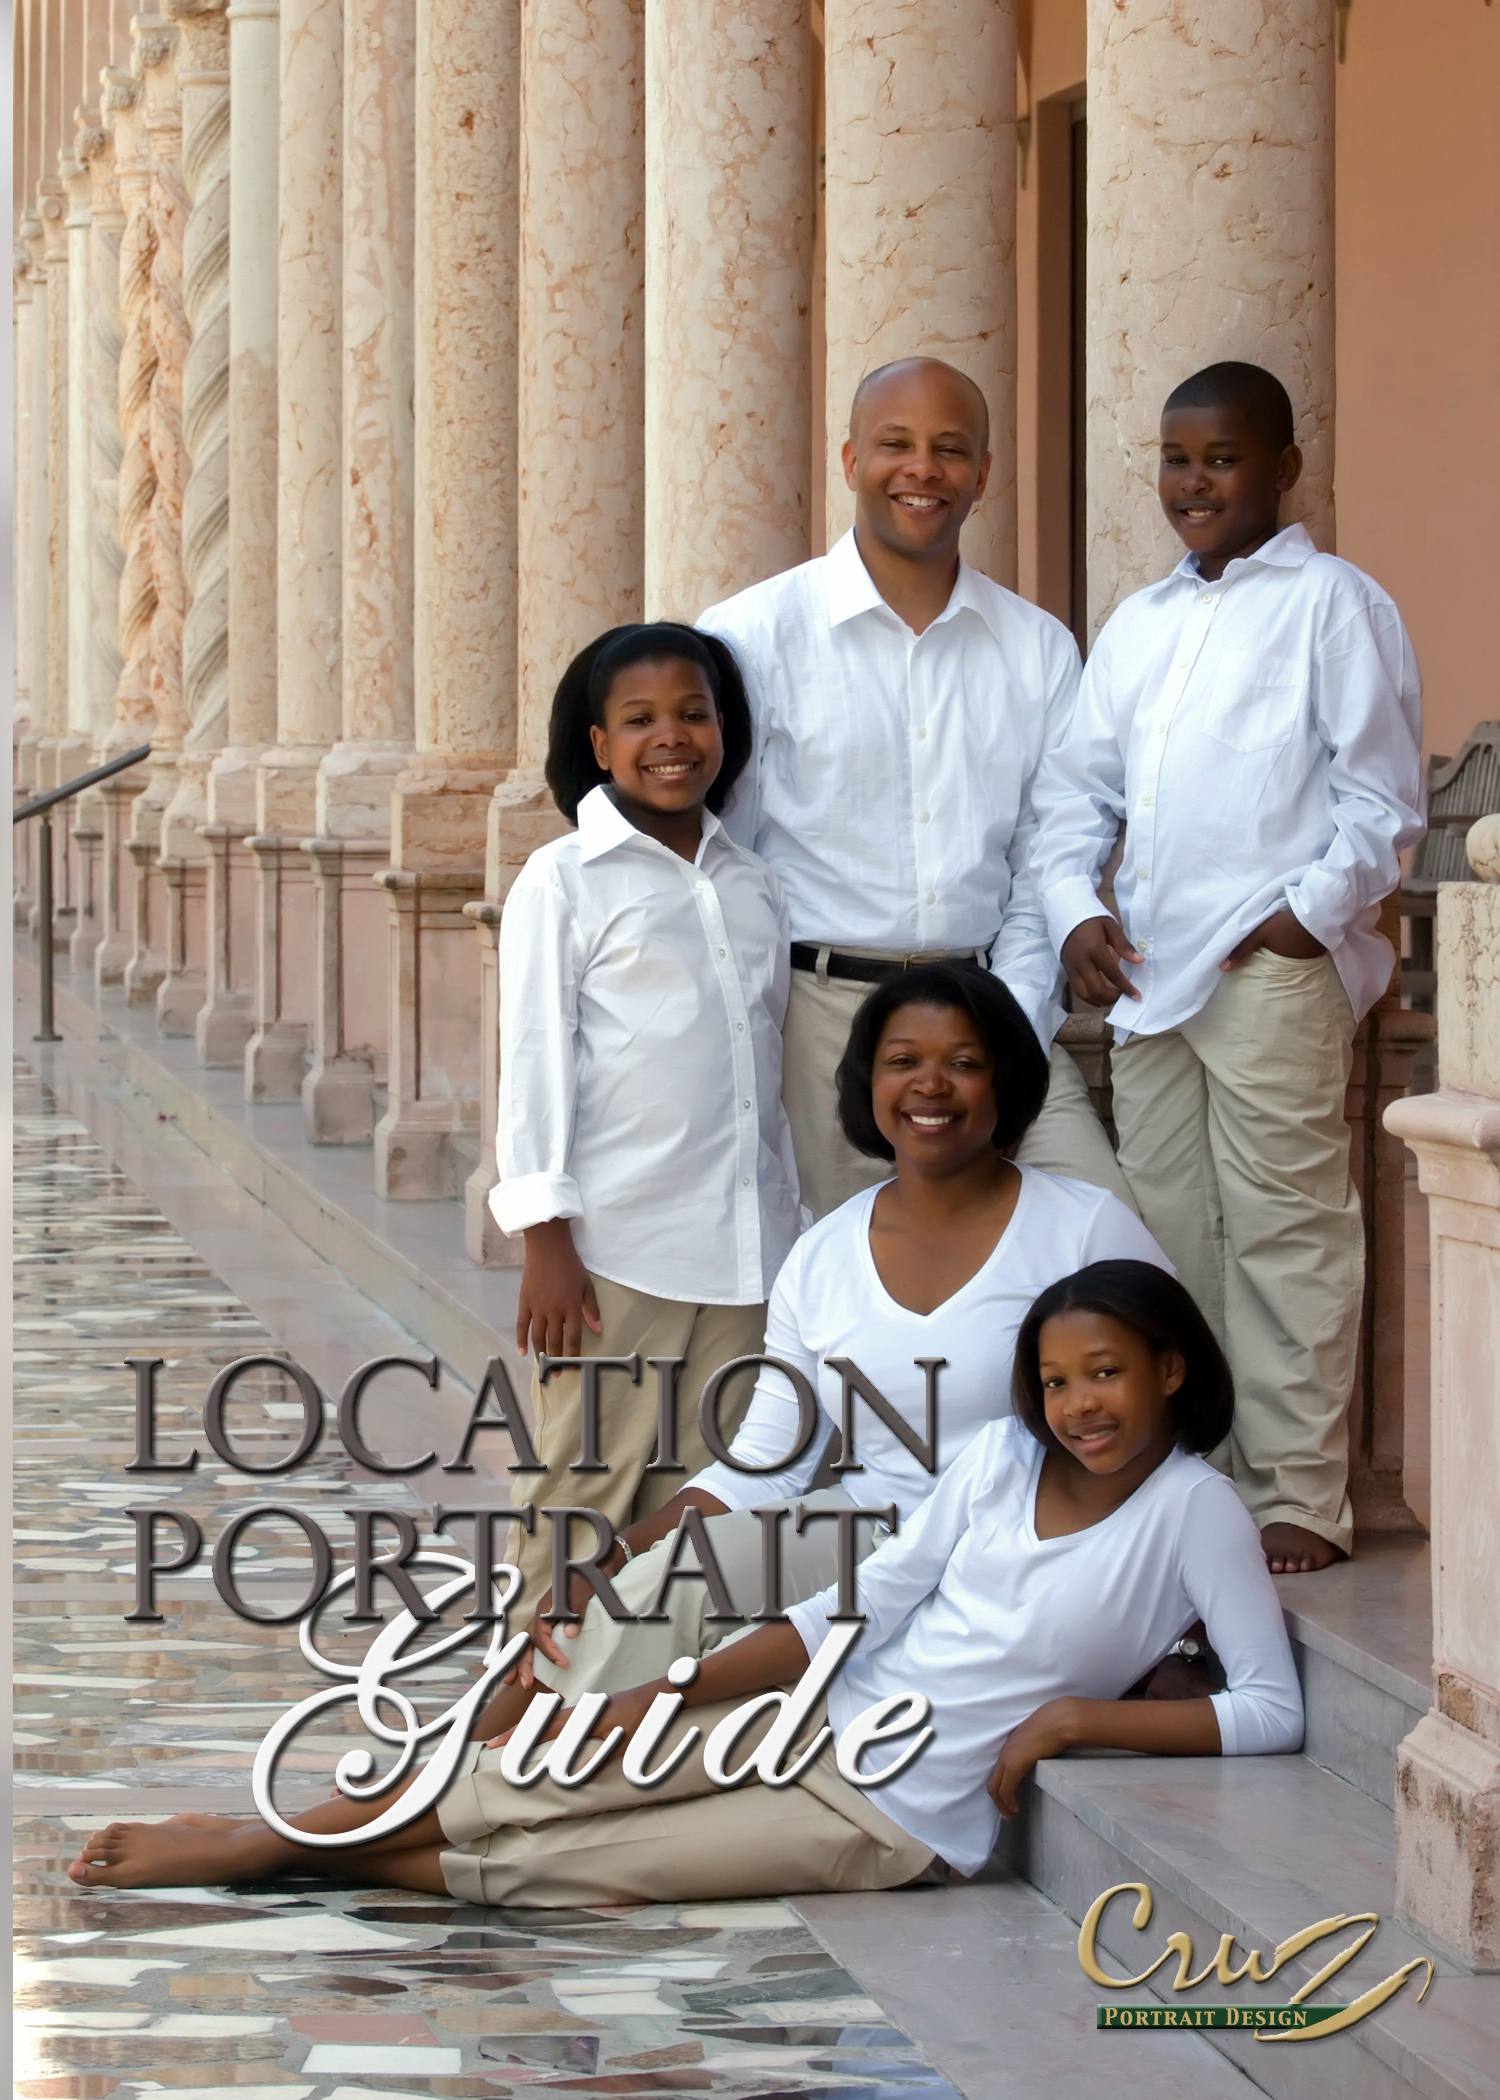 Location Portrait Guide Cruz Portrait Design